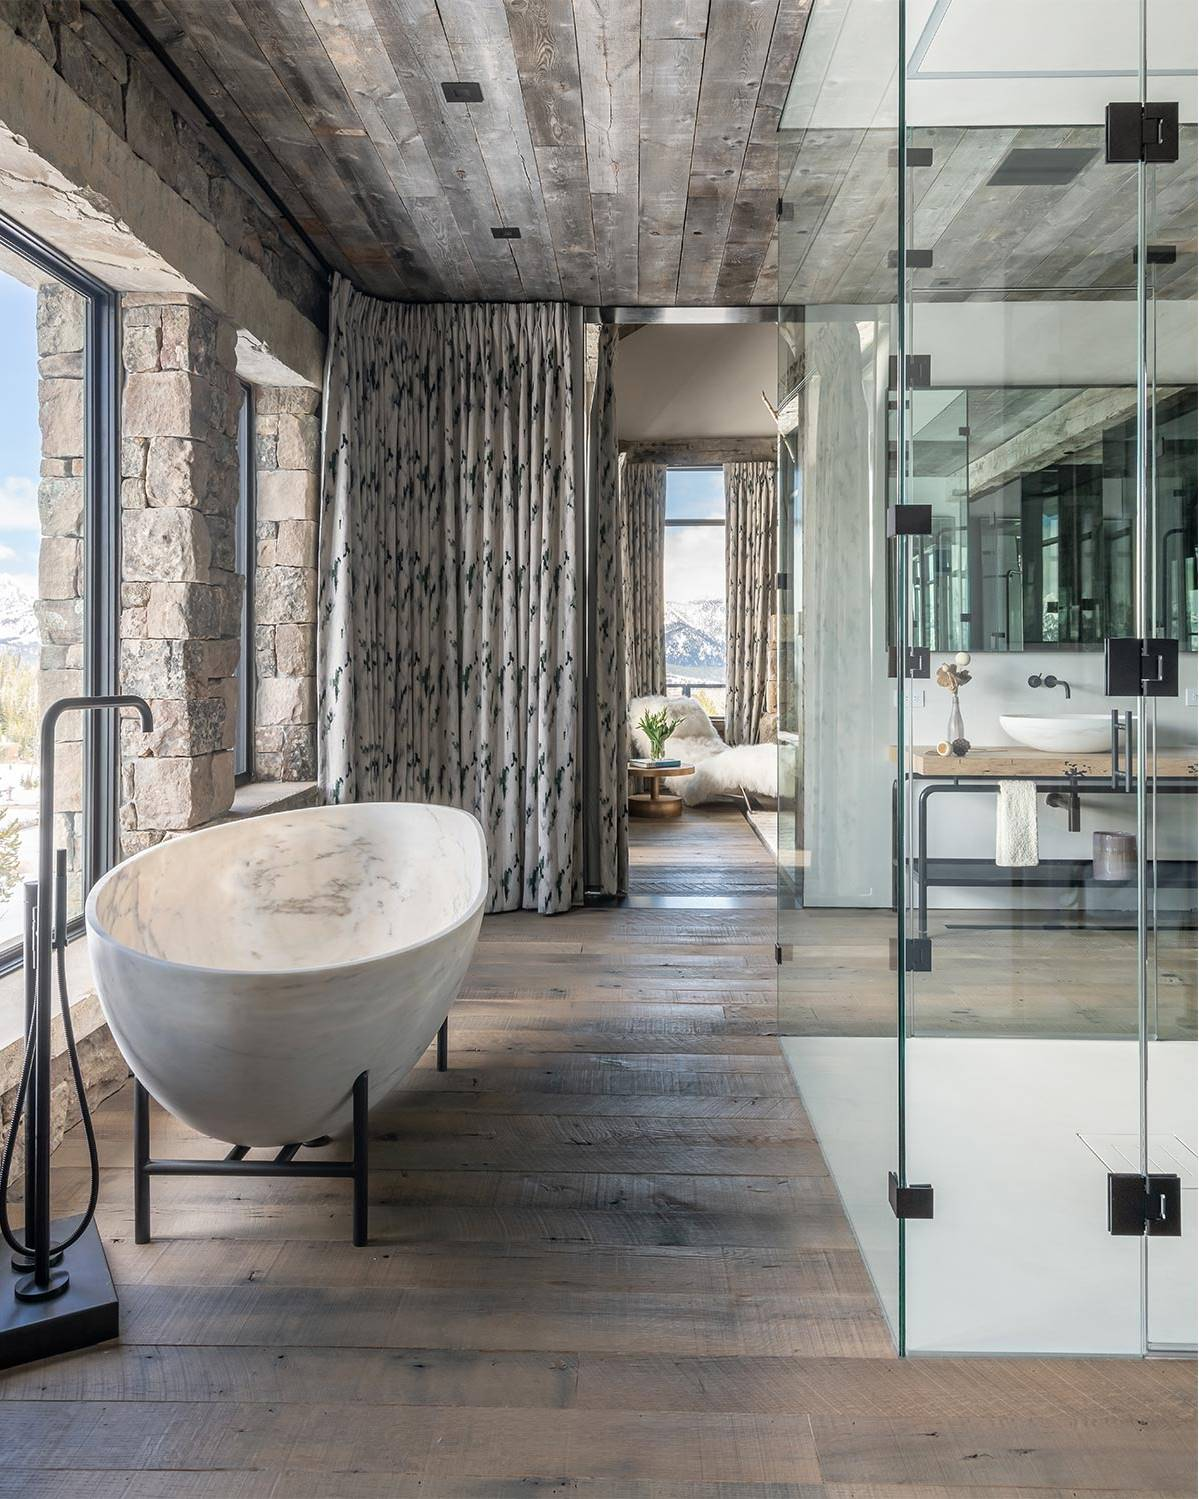 Bathroom with a marble bathtub